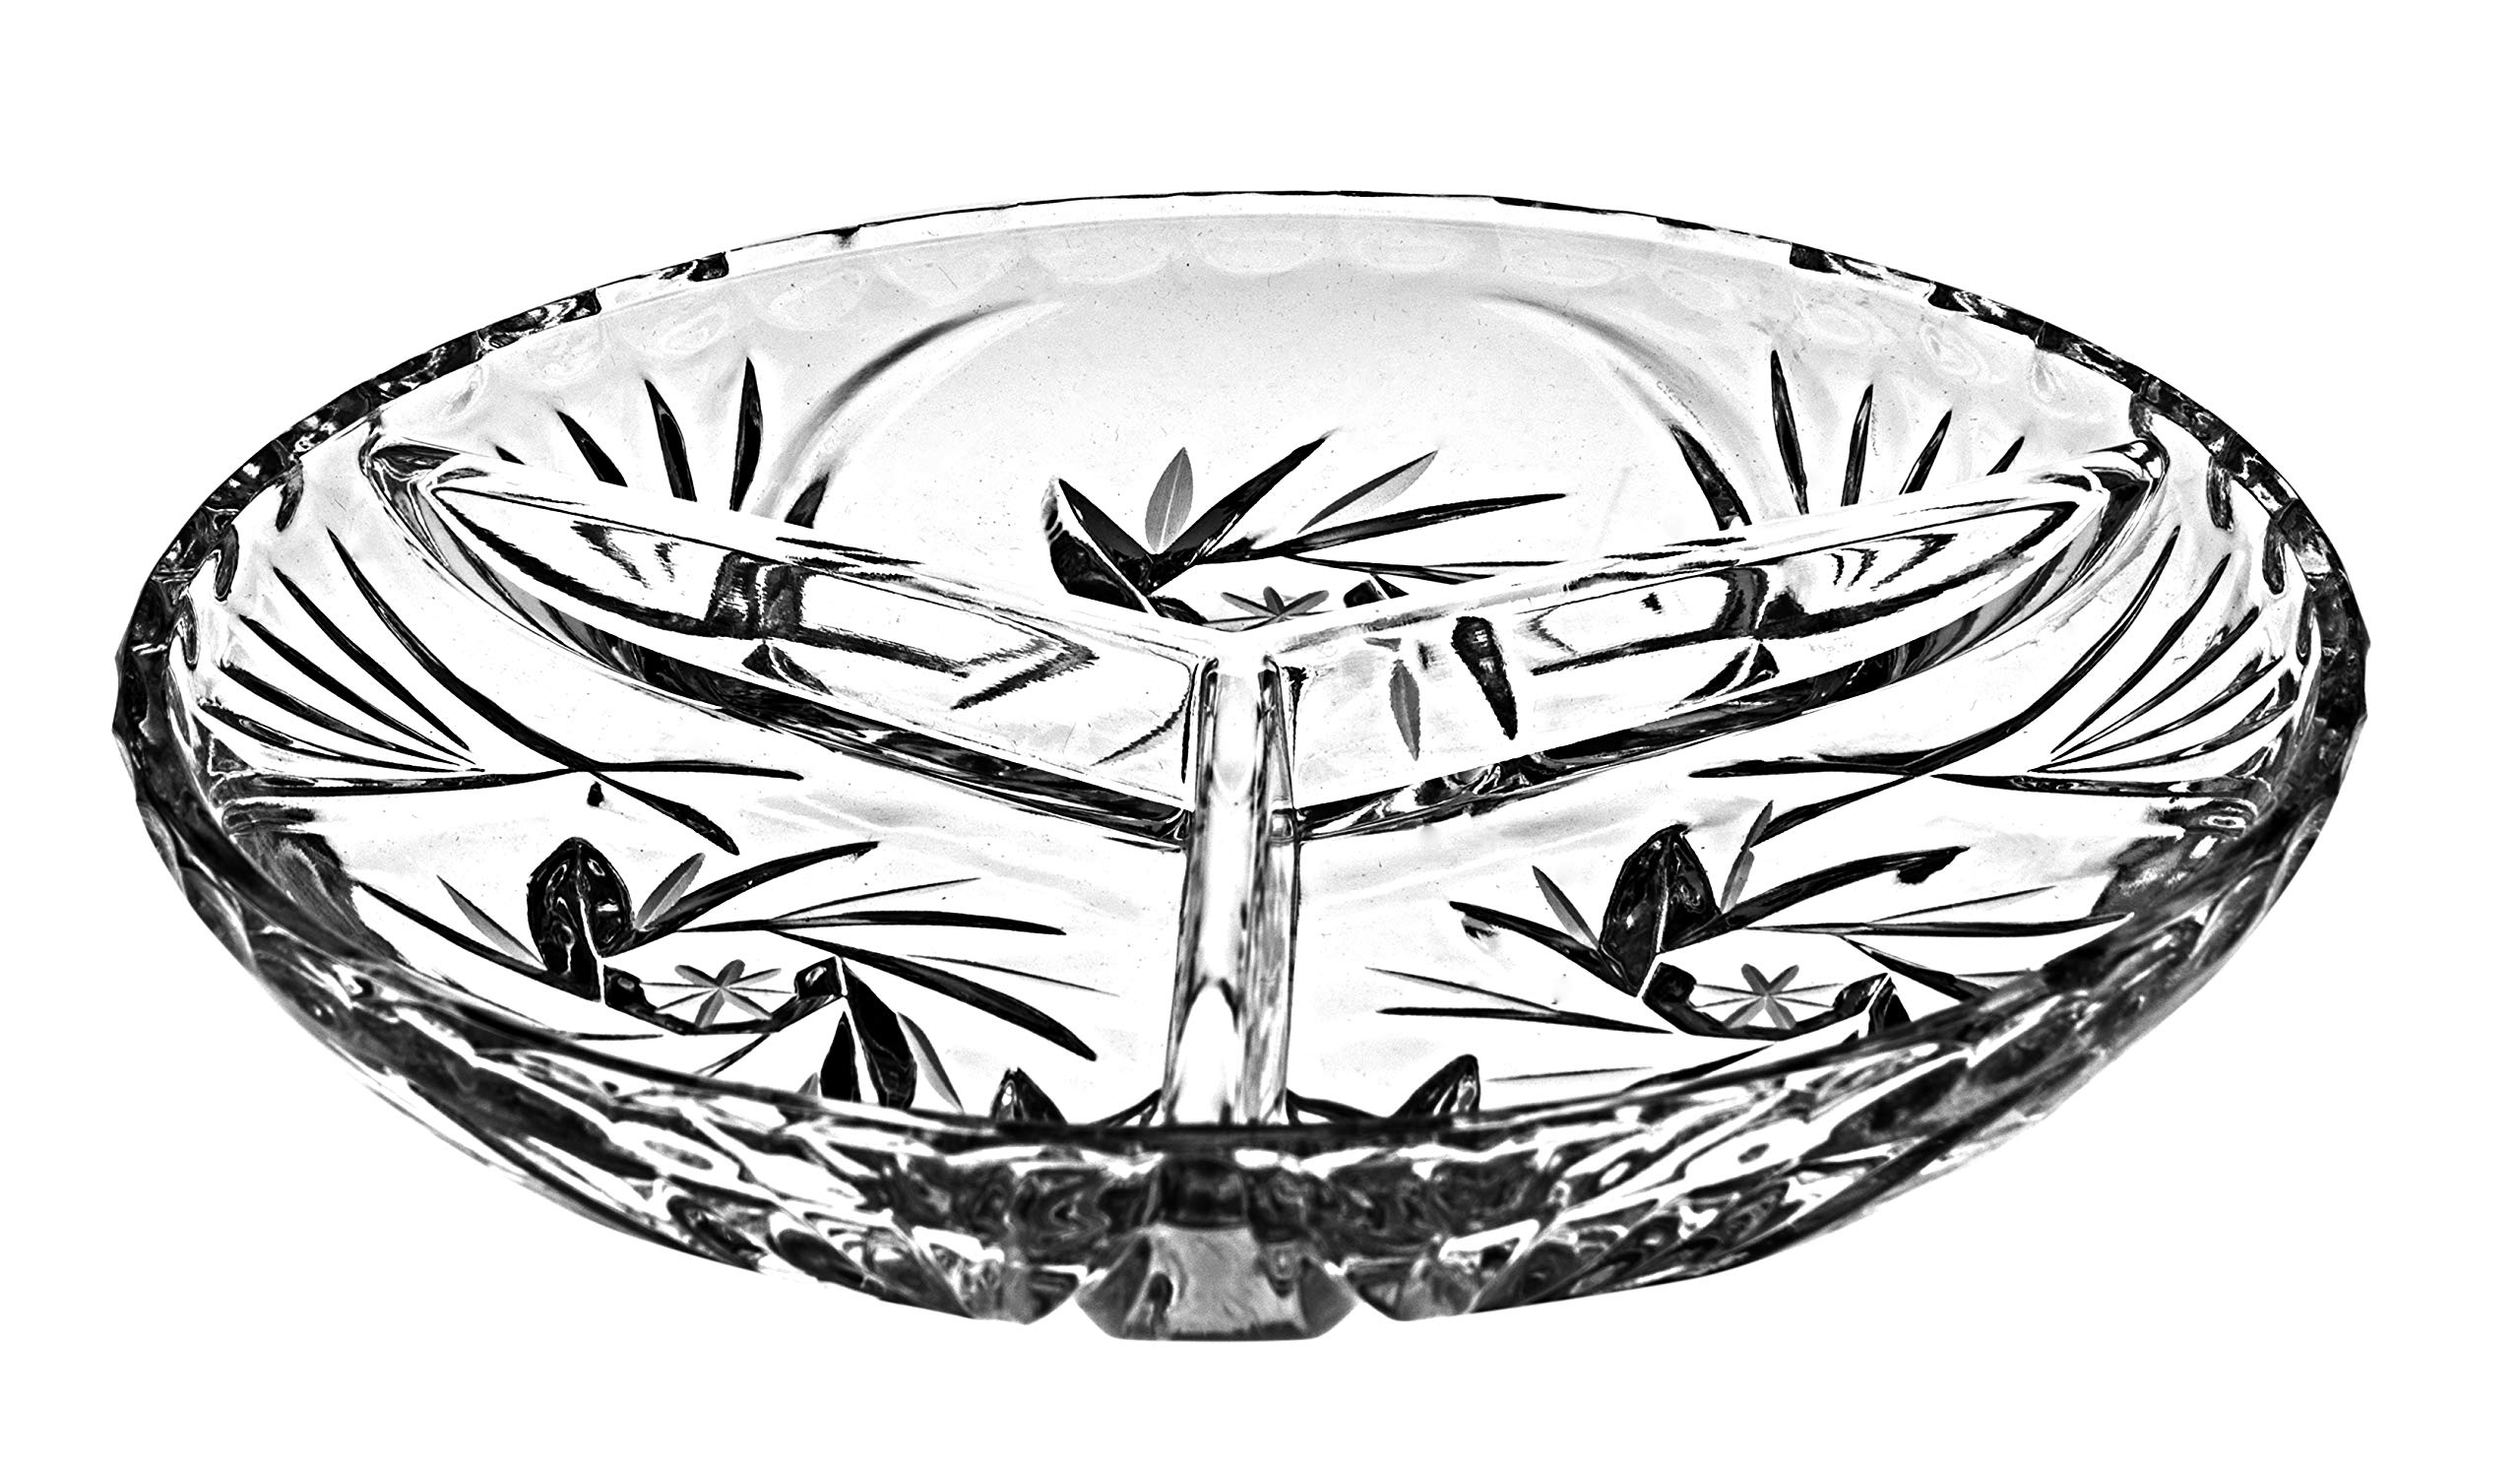 Barski - European Quality - 6'' Diameter - 3 Sectional Tray - Relish Dish - Hand Cut Crystal - Good for Nuts or Candies - Uniquely Designed - Made in Europe